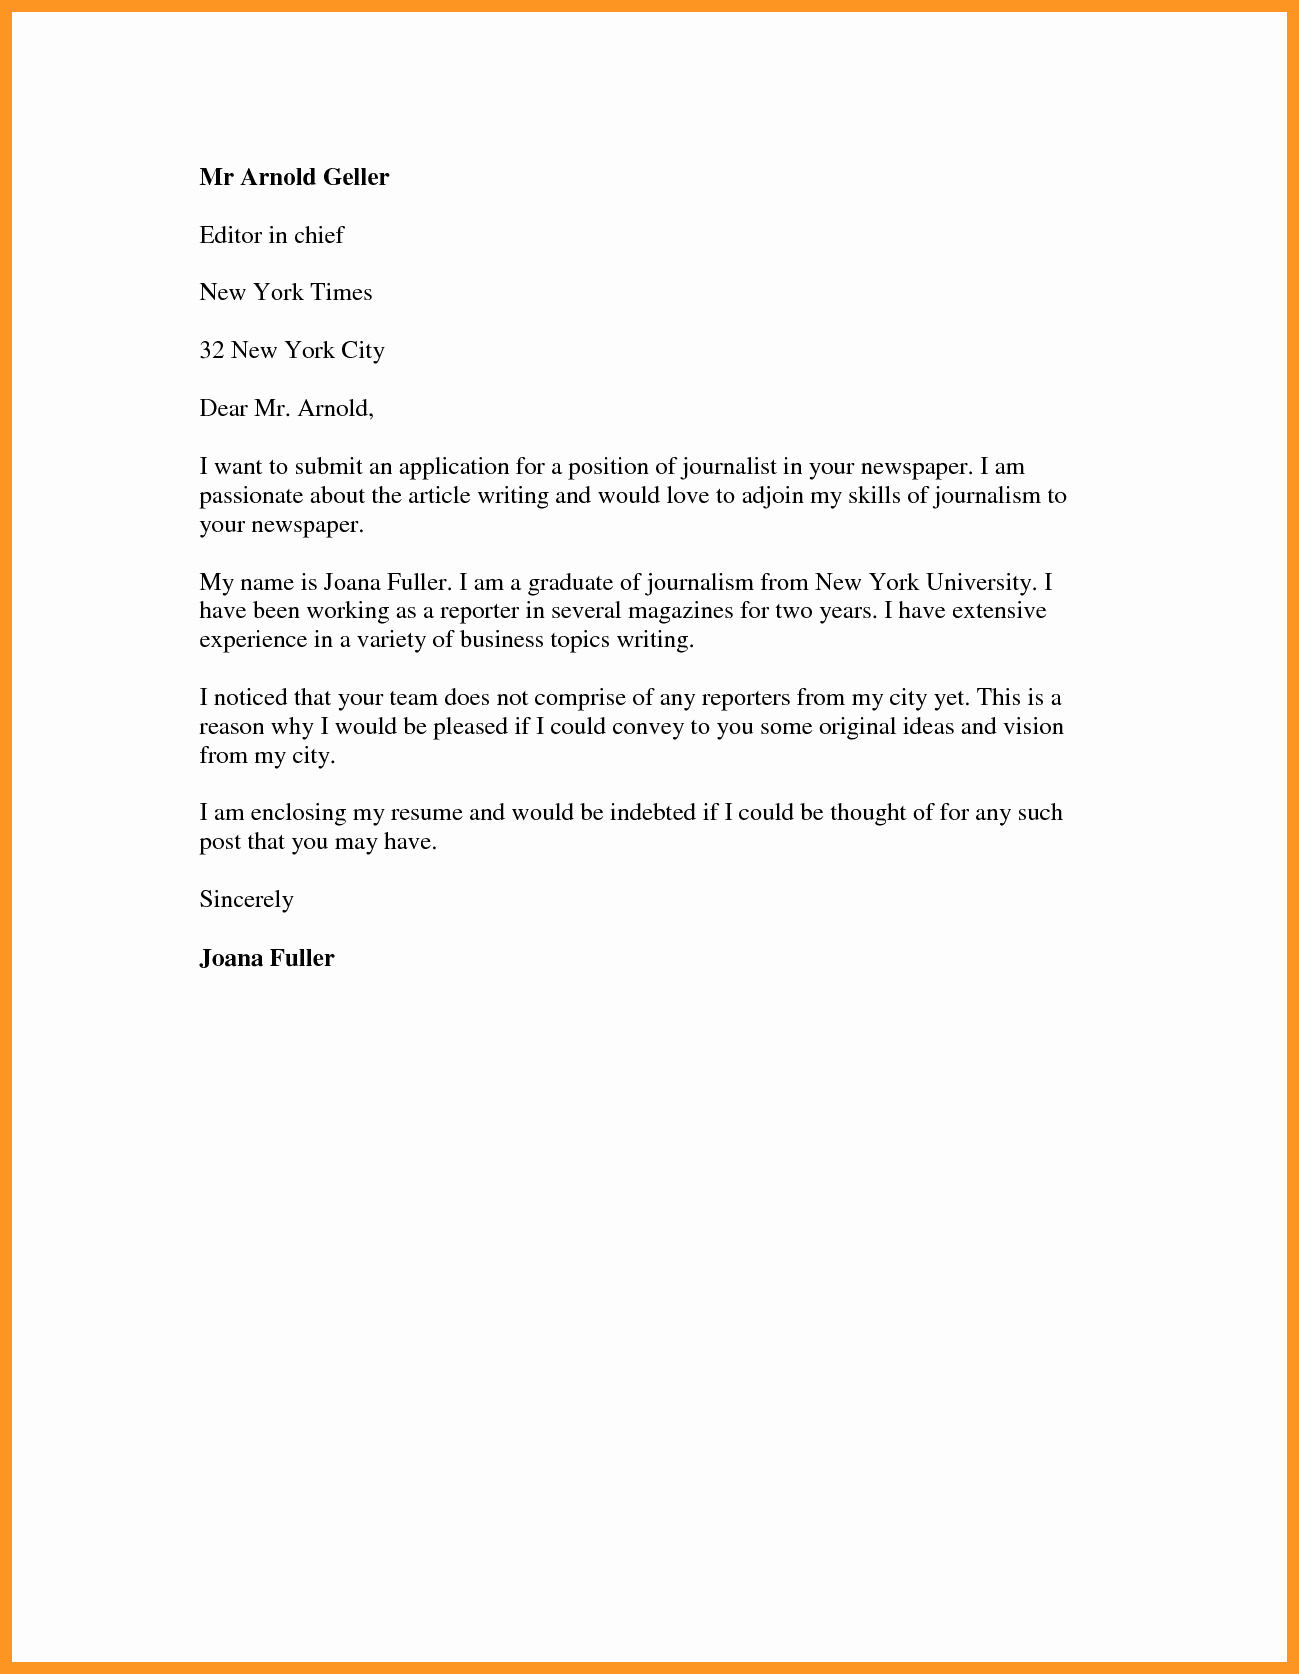 Cover Letter format Pdf Lovely Cover Letter for Job Application Pdf